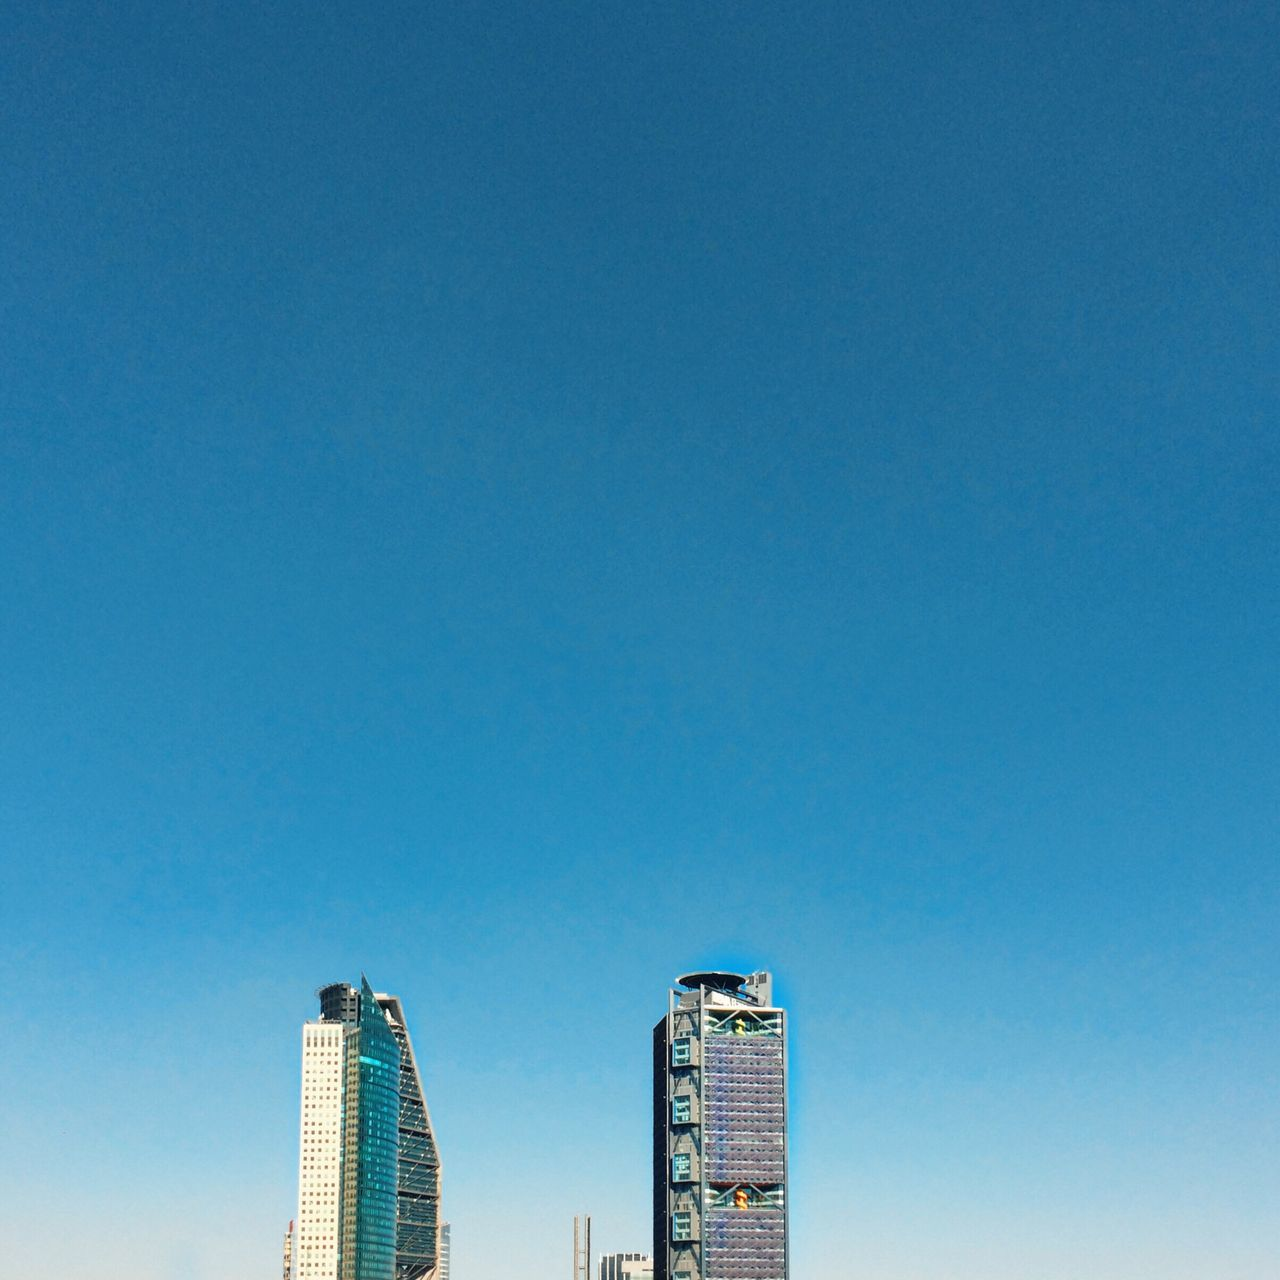 Architecture Blue Building Building Exterior Built Structure City Clear Sky Eye4photography  EyeEm Best Edits EyeEm Best Shots EyeEm Gallery High Section No People Office Building Tall Tall - High Tower VSCO Vscocam Vscogood